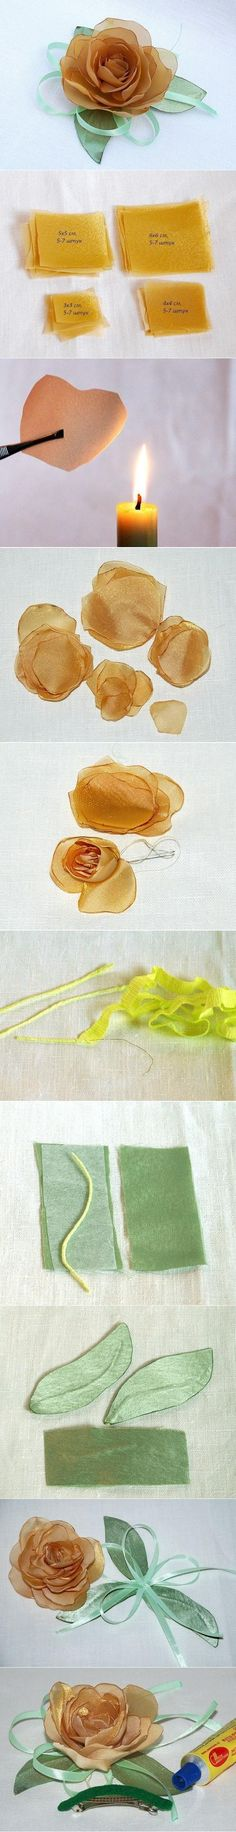 DIY Pretty Hairpin Rose DIY Pretty Hairpin Rose